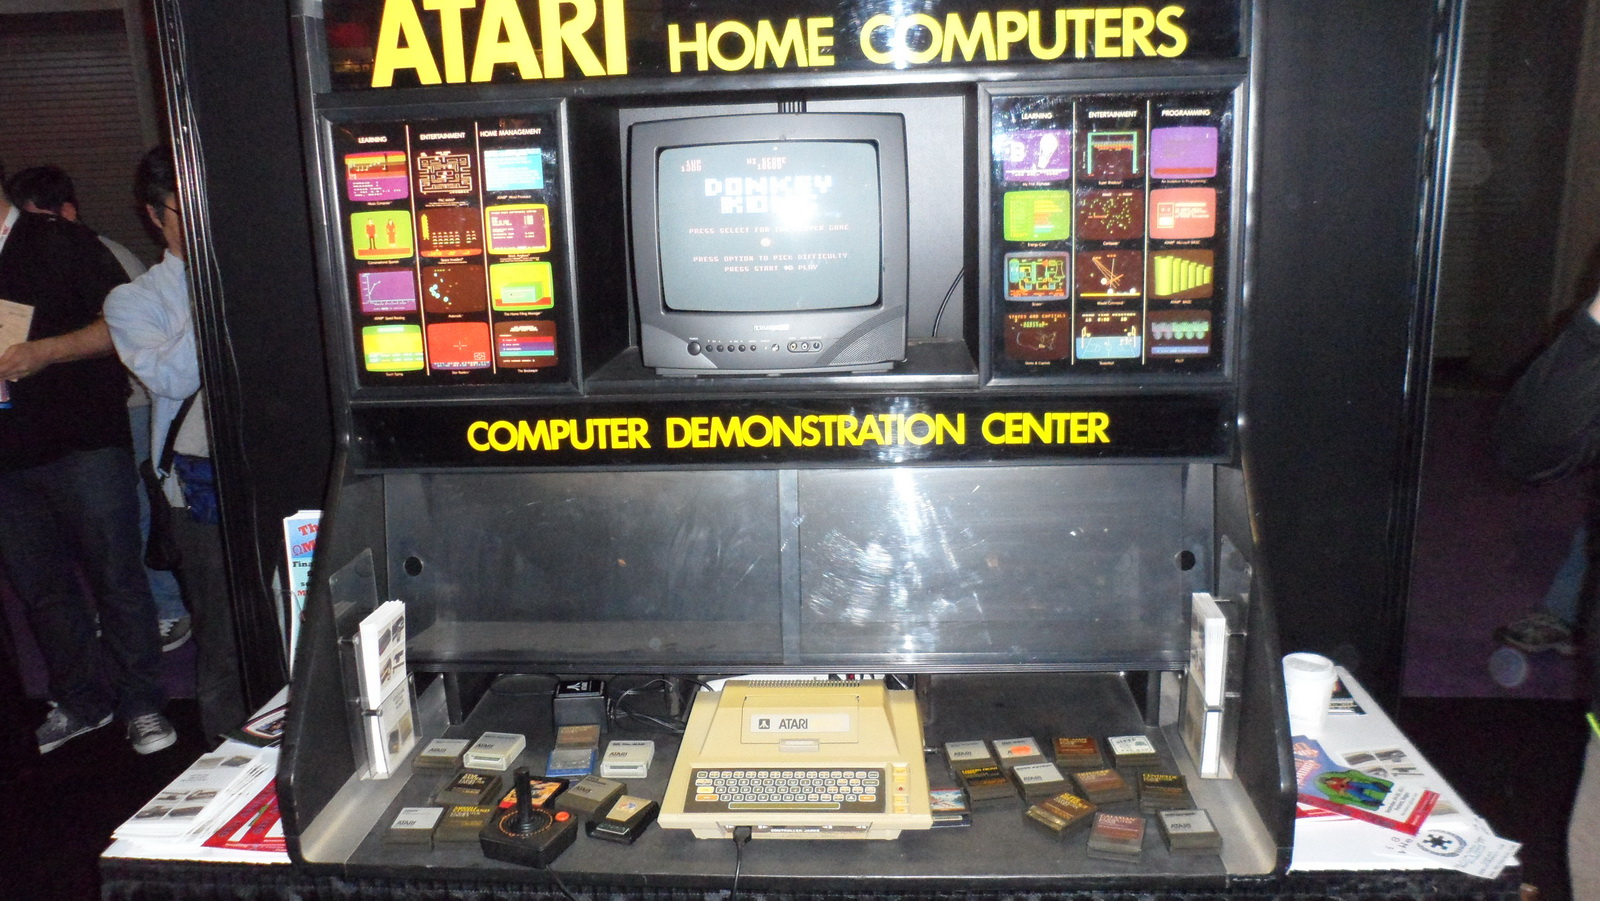 Atari Demonstration Center